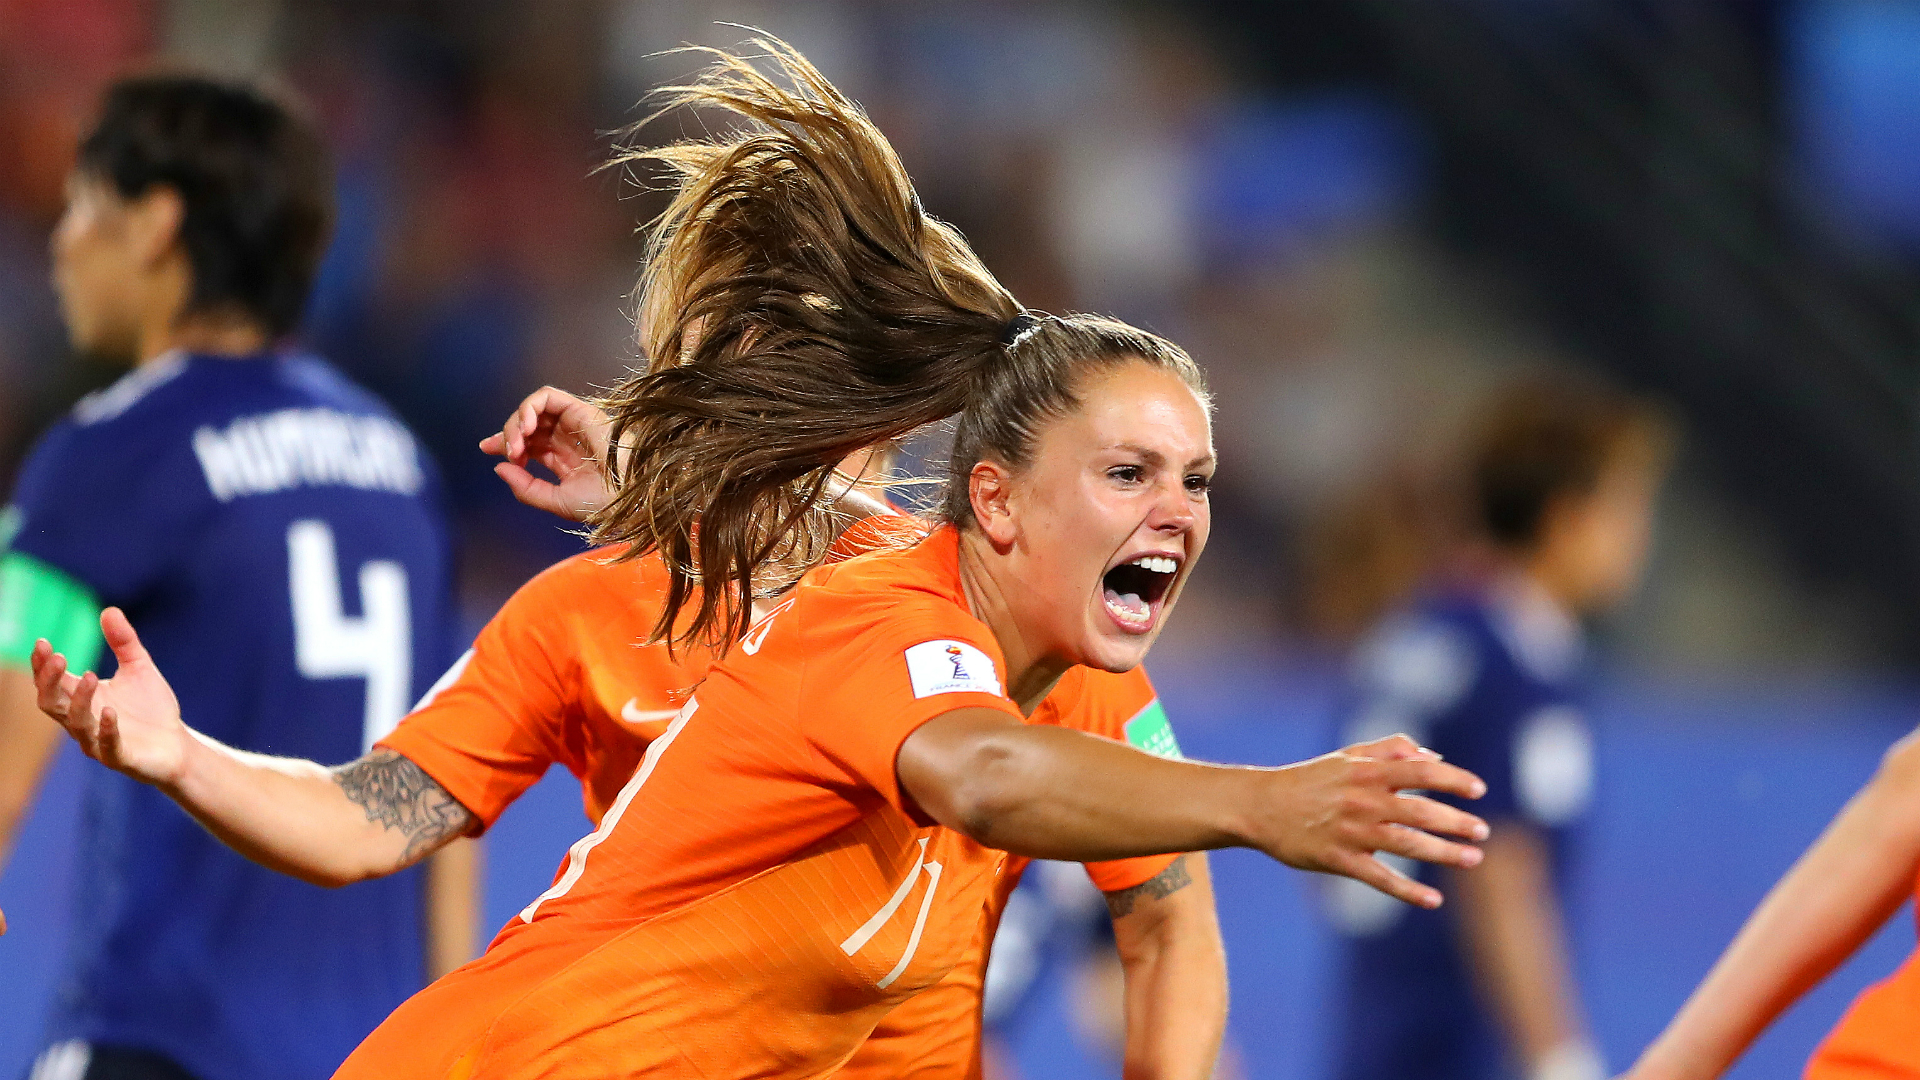 Netherlands and Italy to meet in Women's World Cup quarters as Asian sides exit